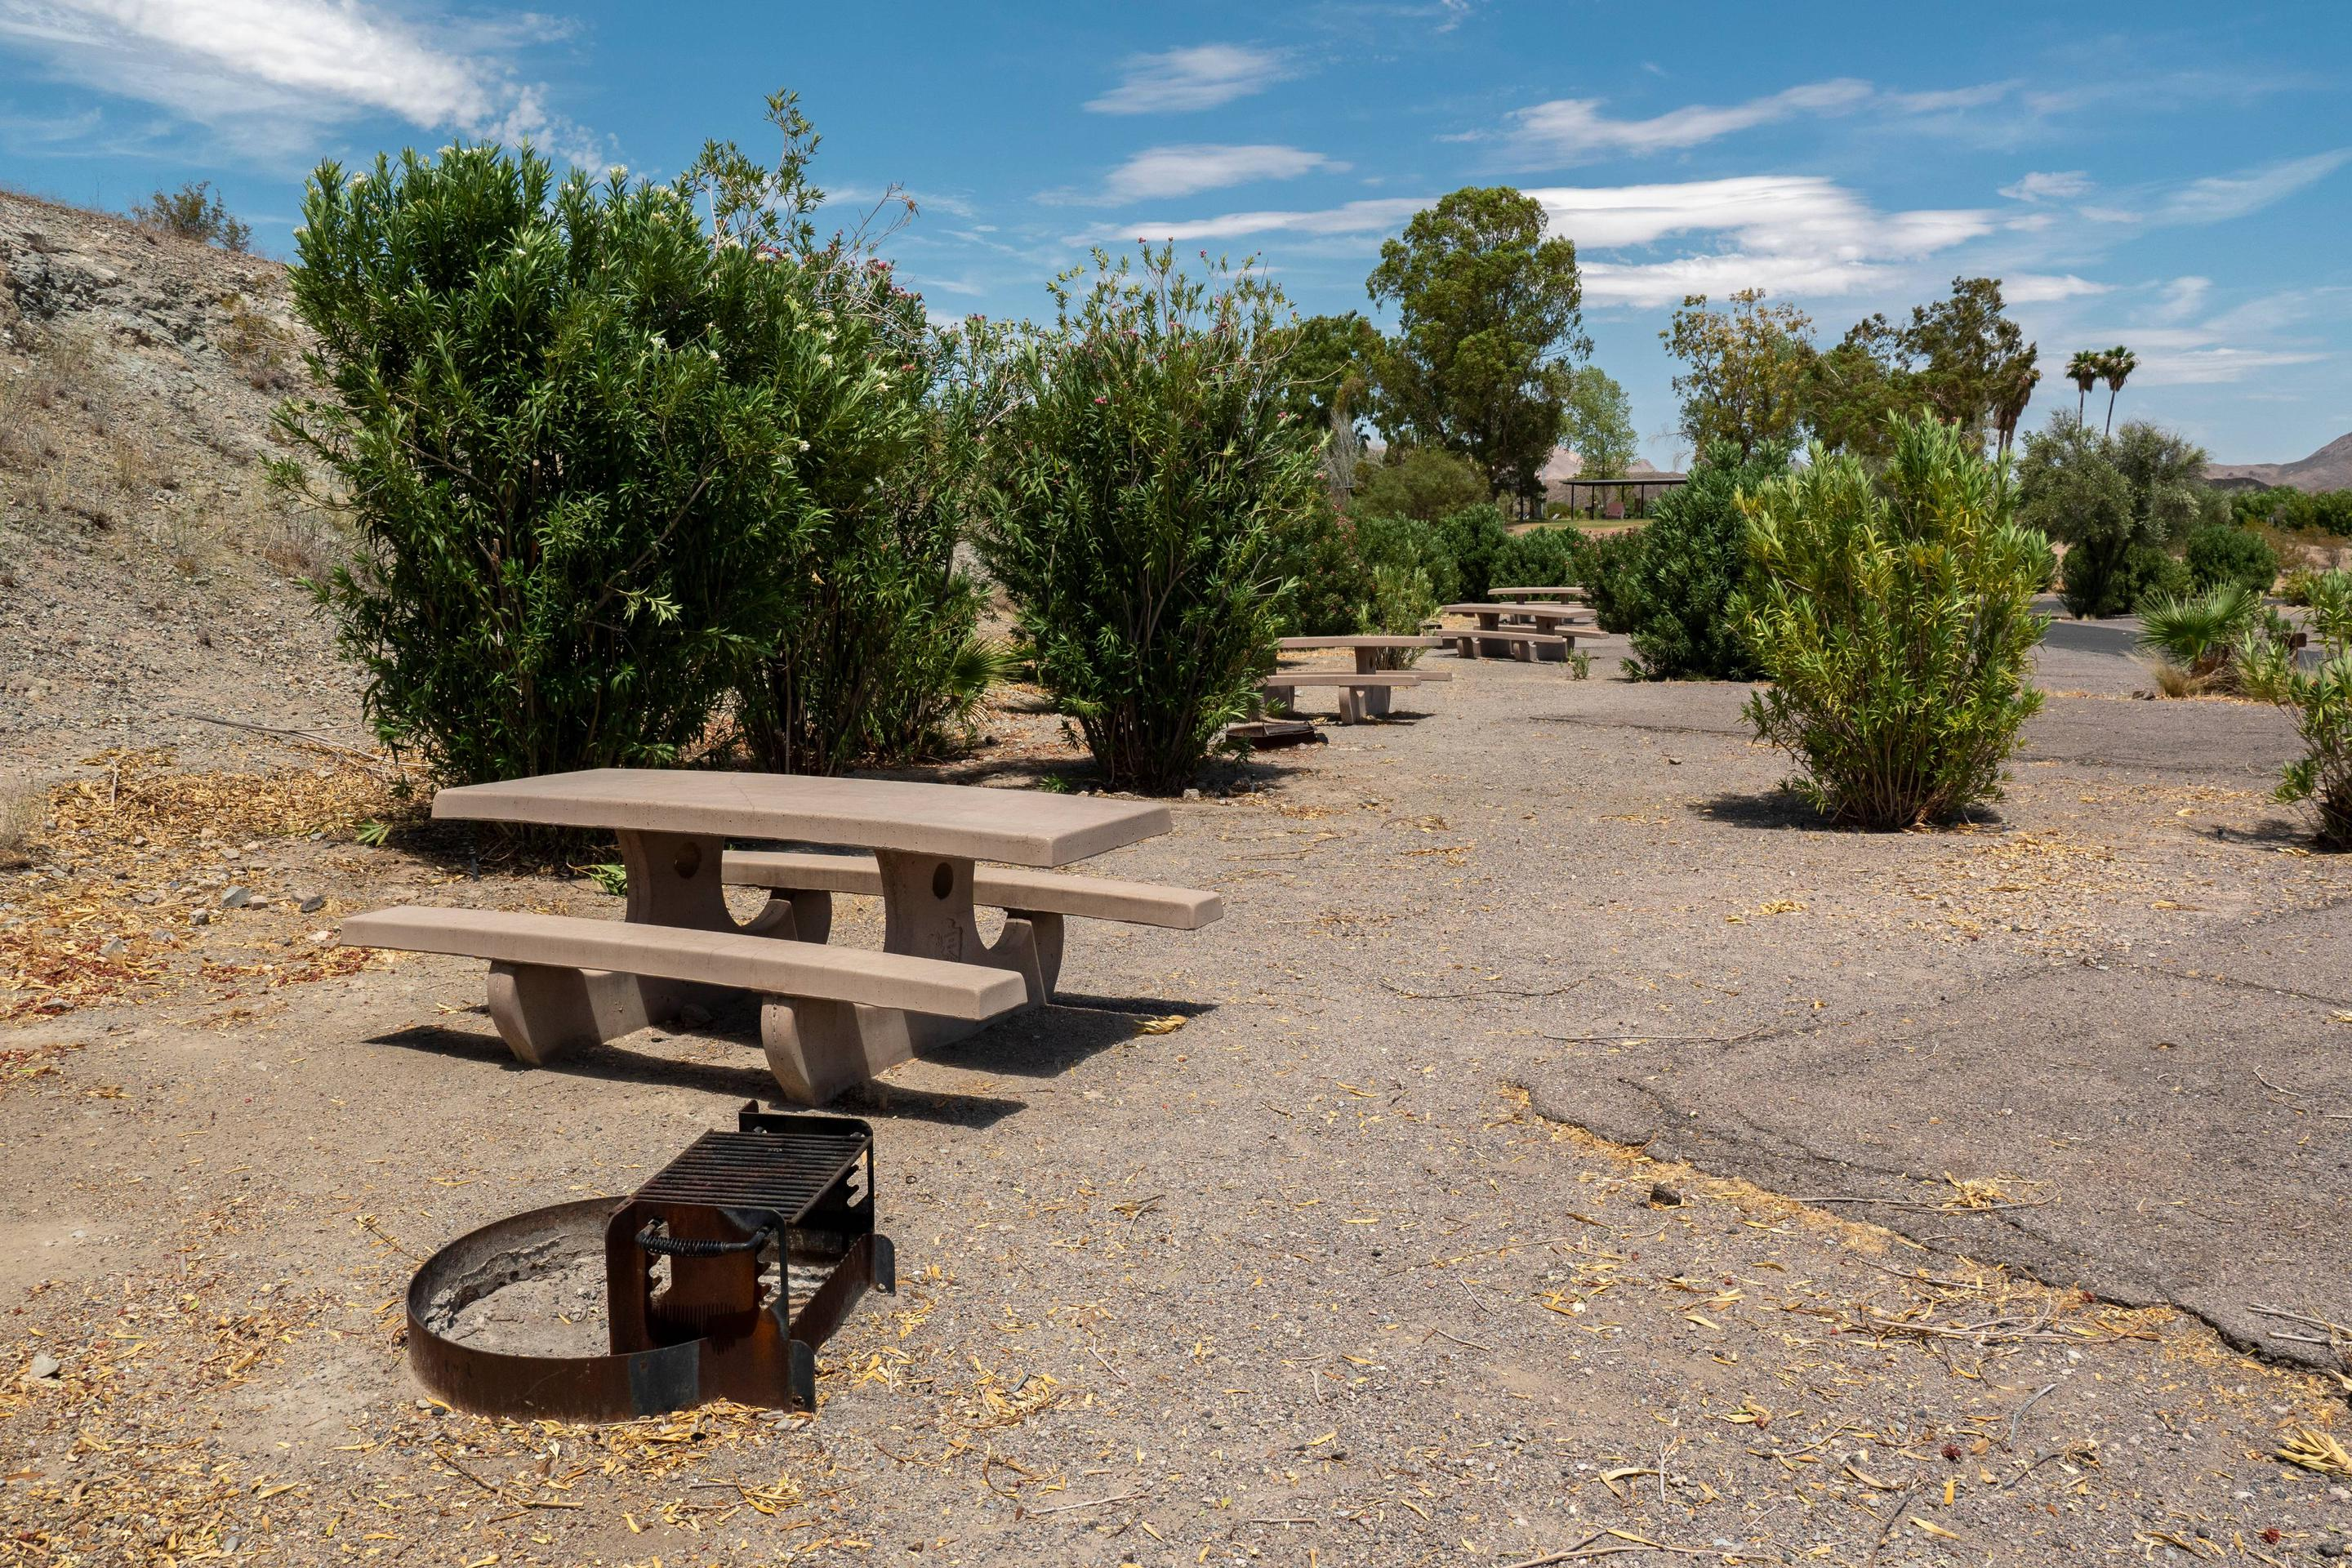 Campsite located in a desert setting4Callville Bay Campground